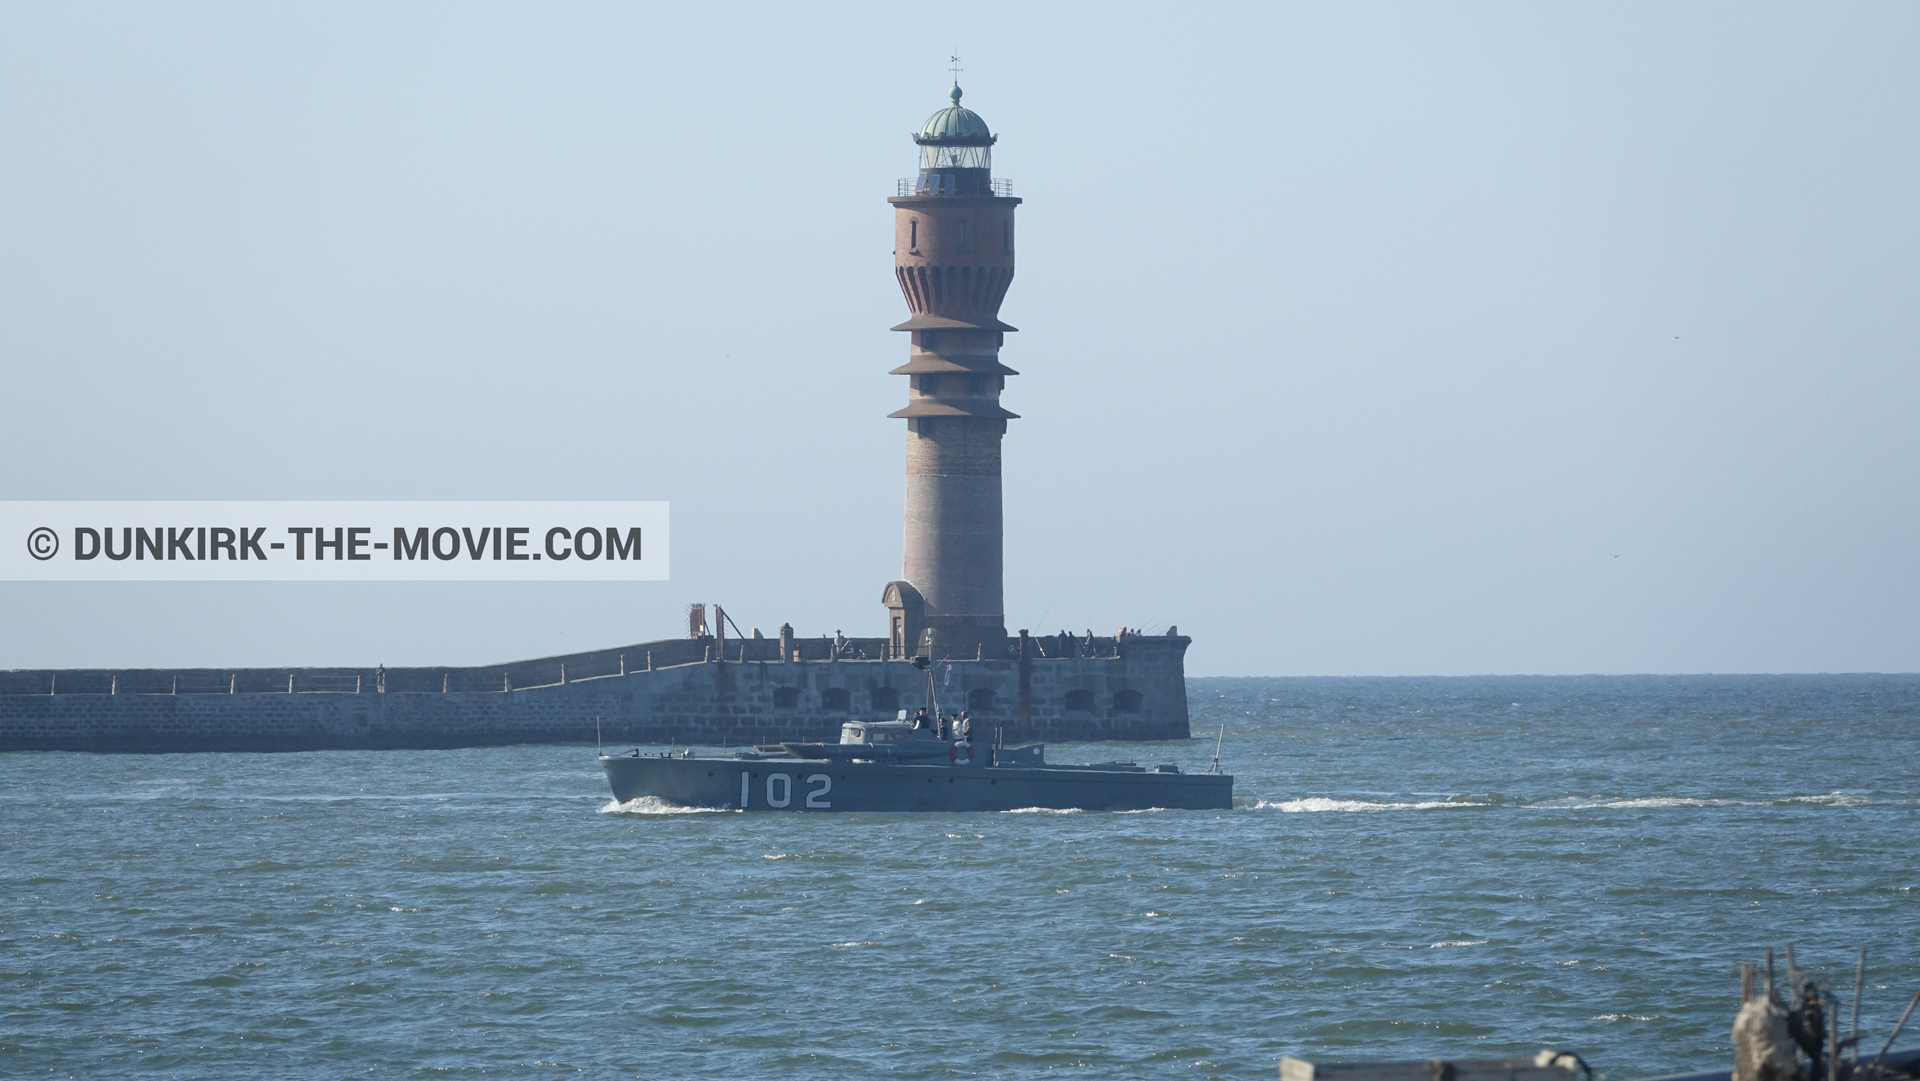 Picture with boat, blue sky, St Pol sur Mer lighthouse,  from behind the scene of the Dunkirk movie by Nolan